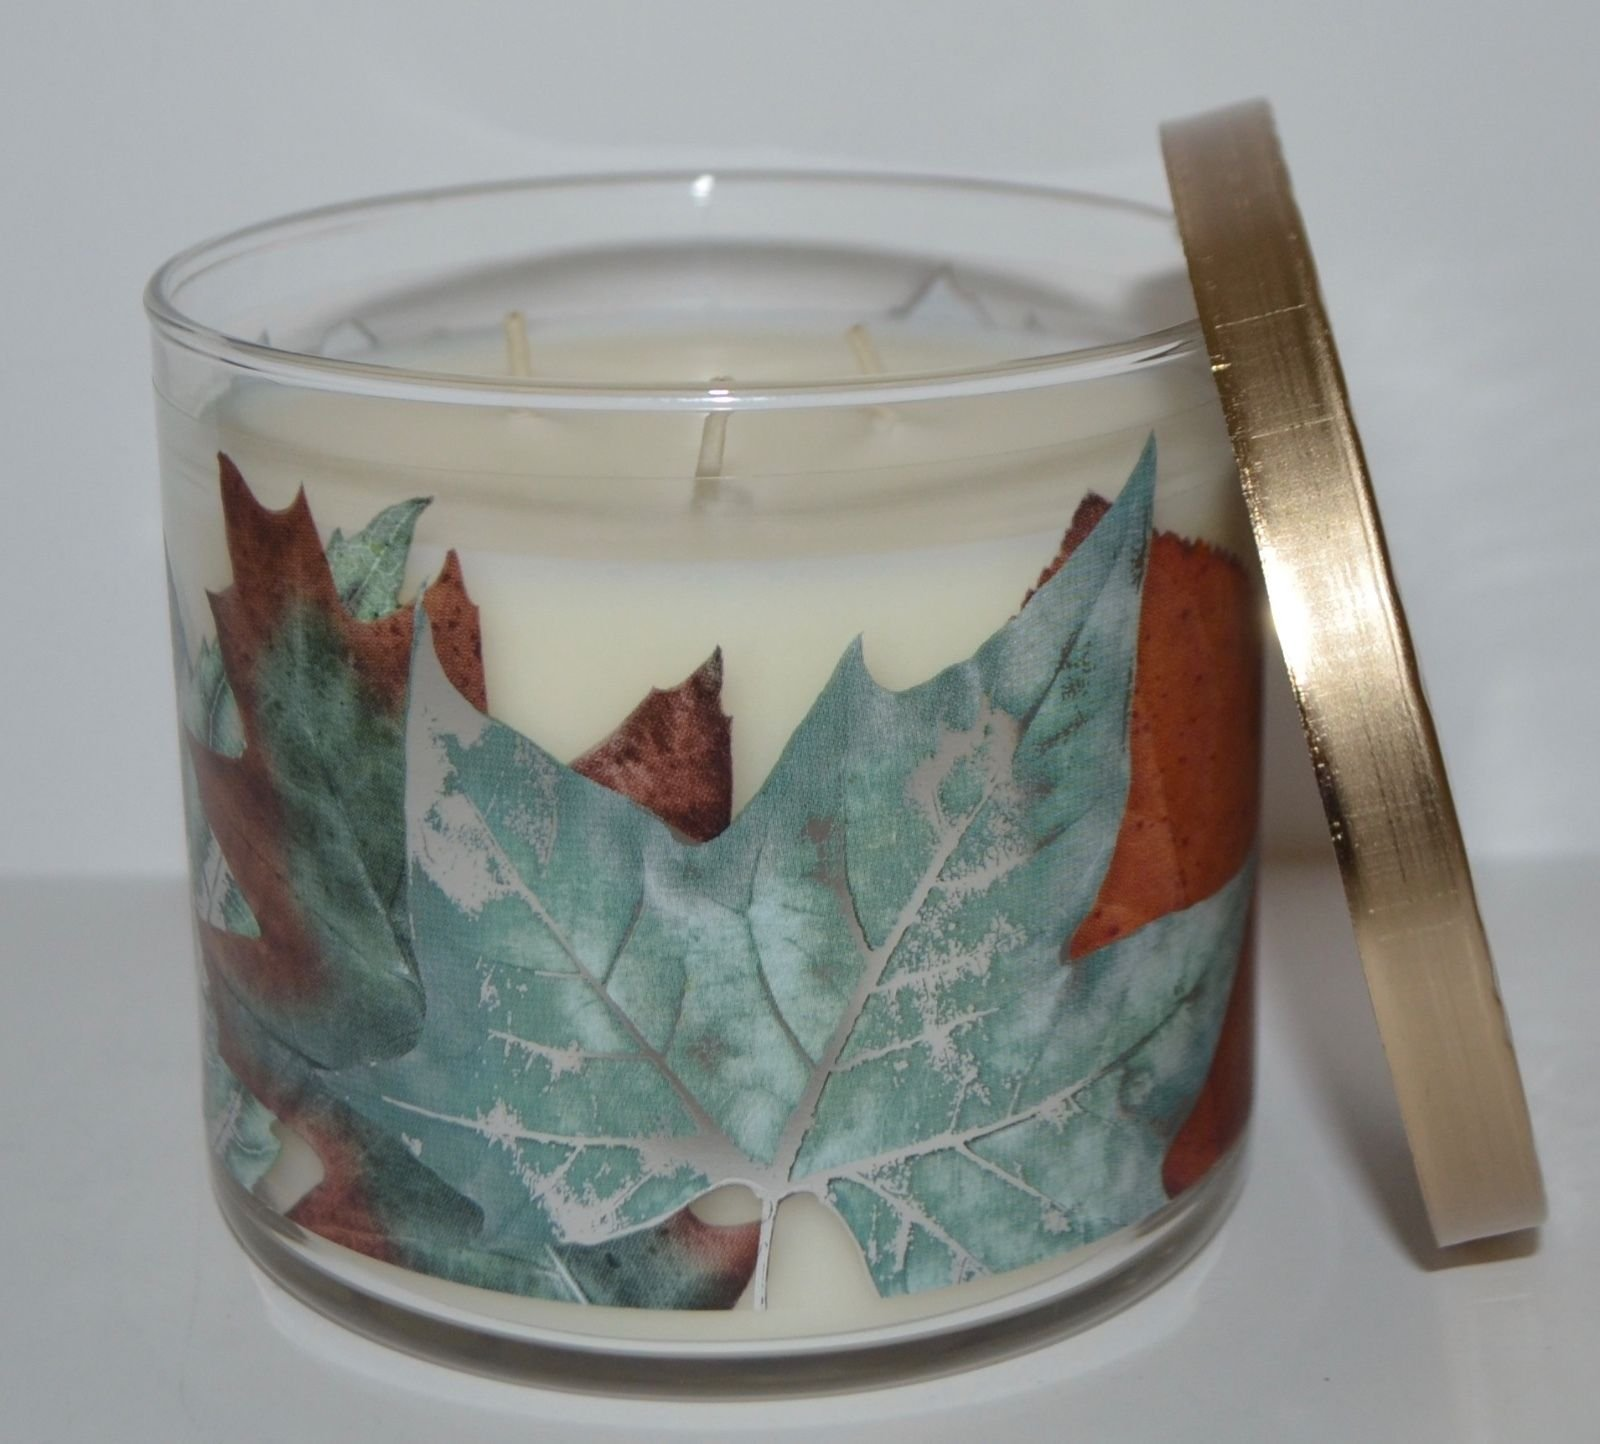 AUTUMN SKY 3 Wick Candle 14.5 oz / 411 g